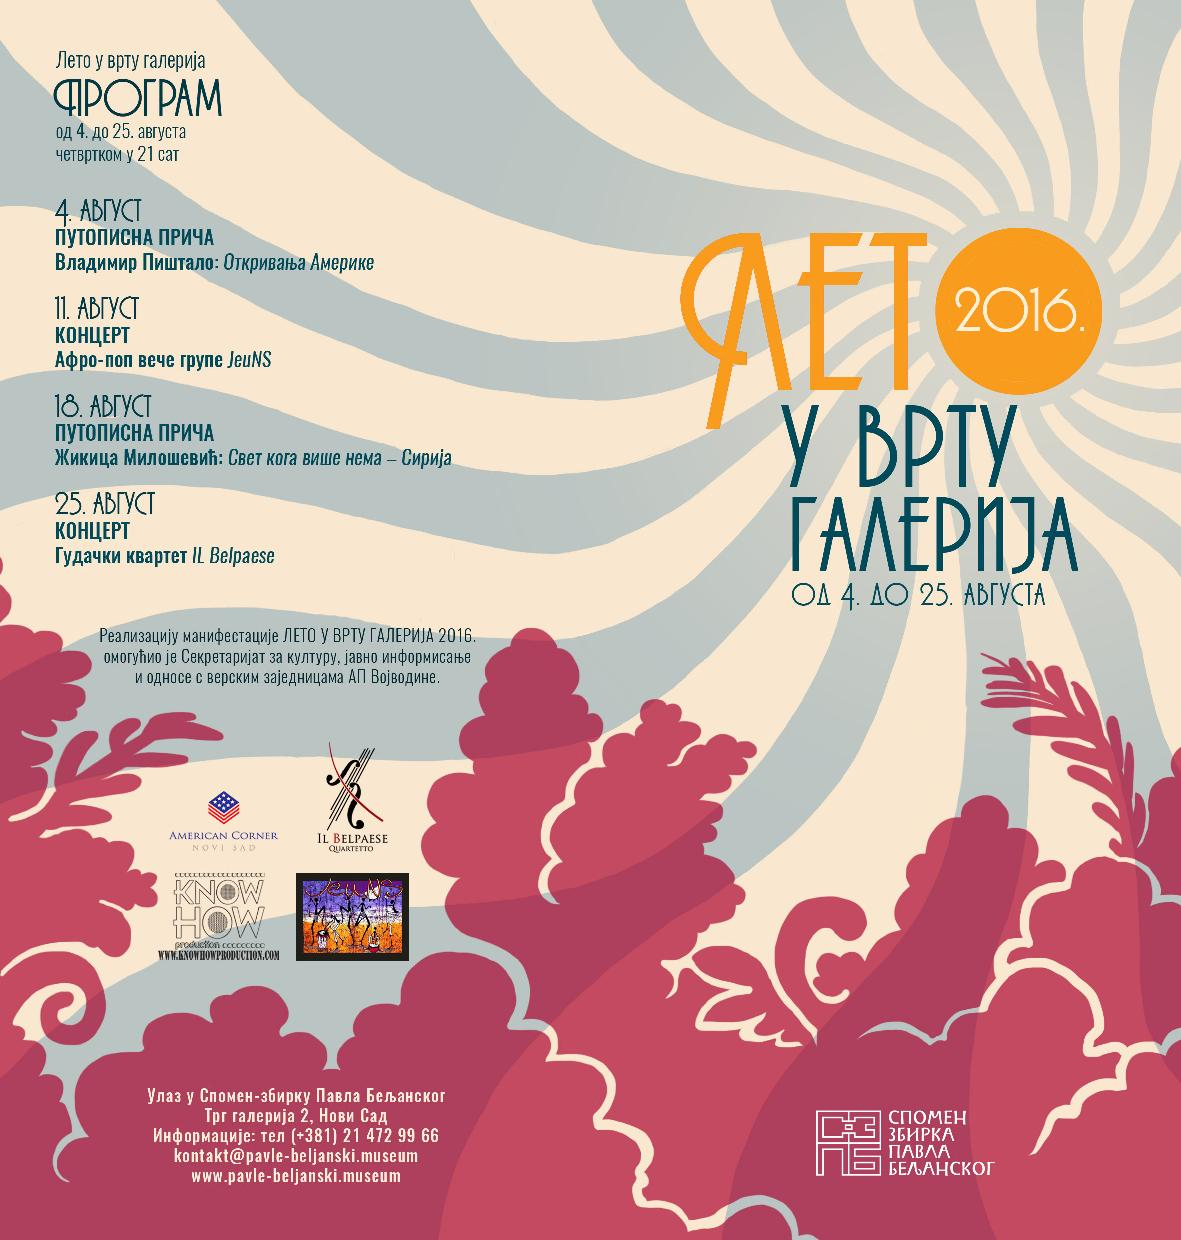 001 Leto u vrtu galerija - program